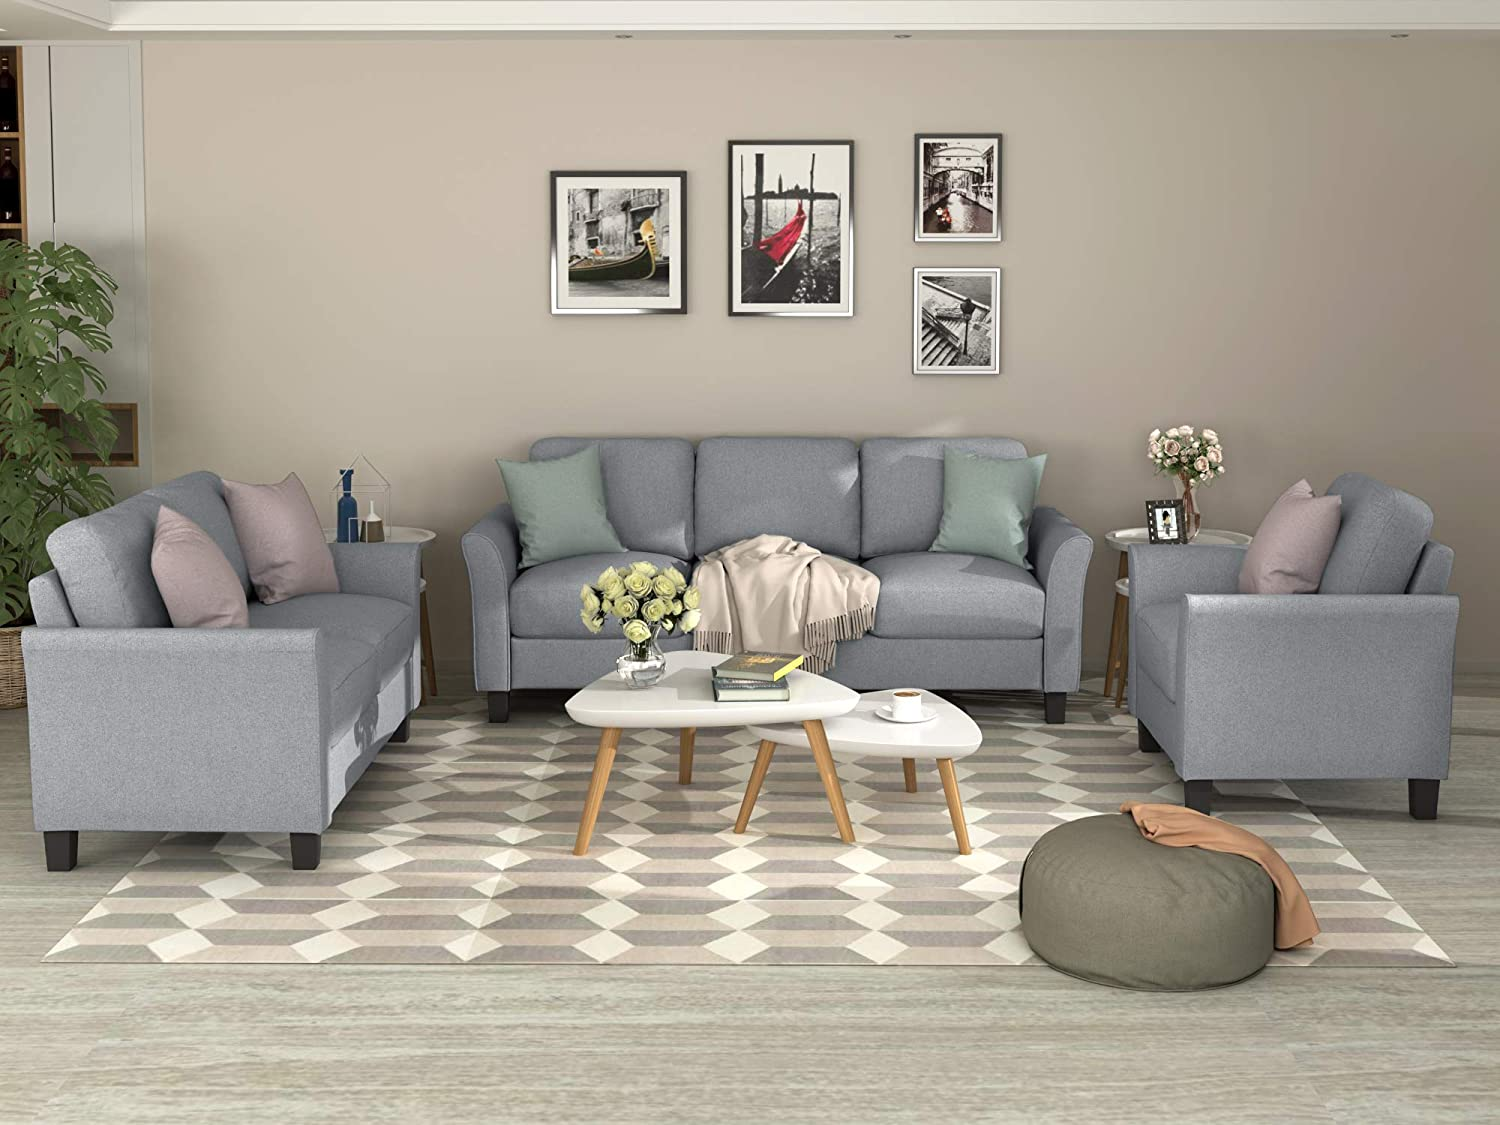 3 Pieces Living Room Sets, Living Room Furniture Sofa Set Include Armchair Loveseat Couch